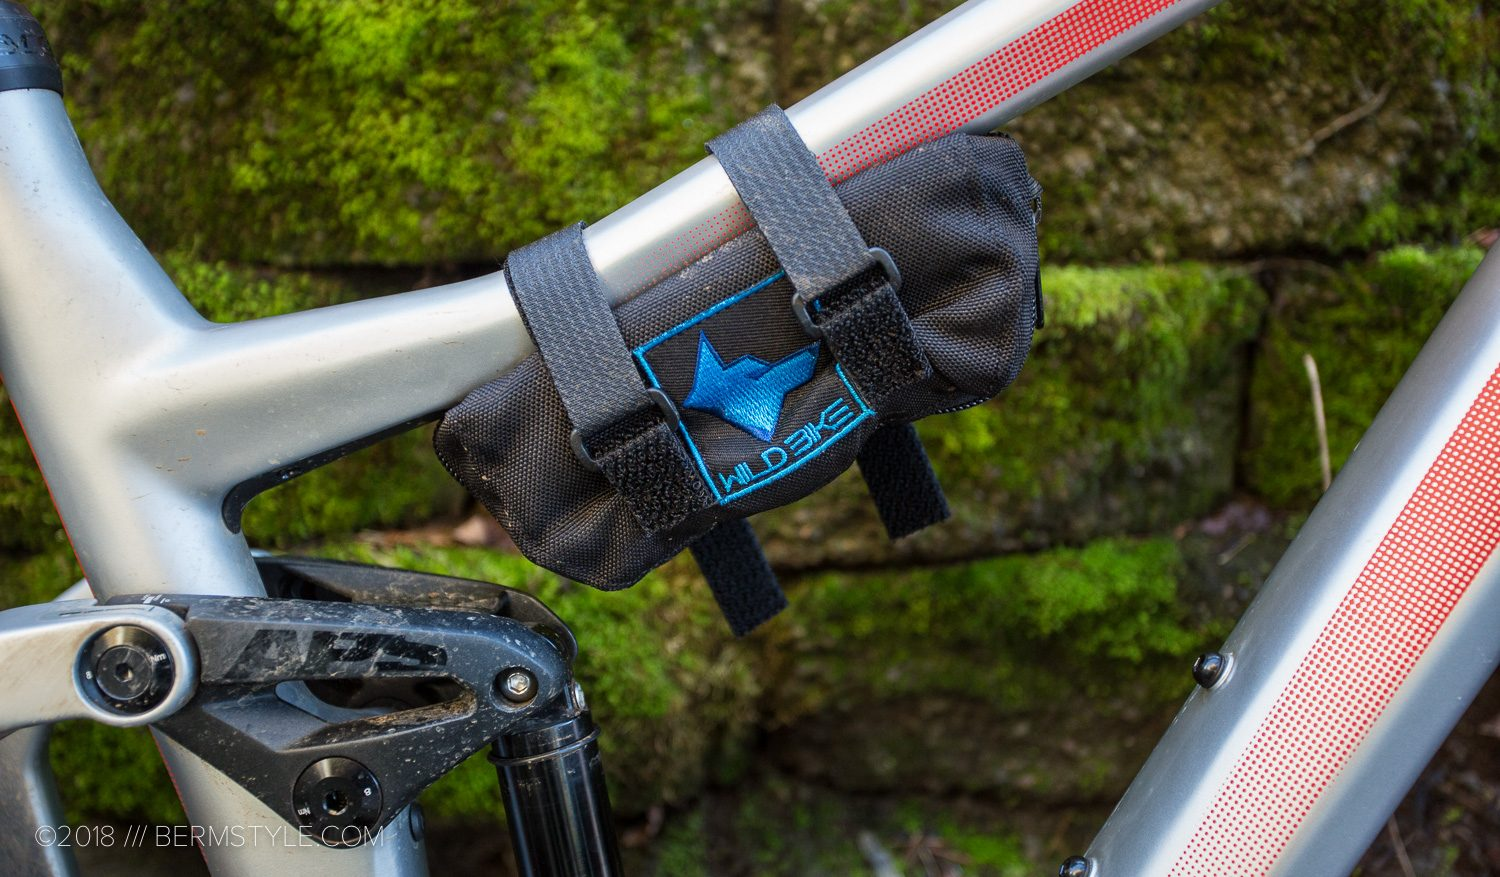 Review: Wild Bike Elements Frame Bag